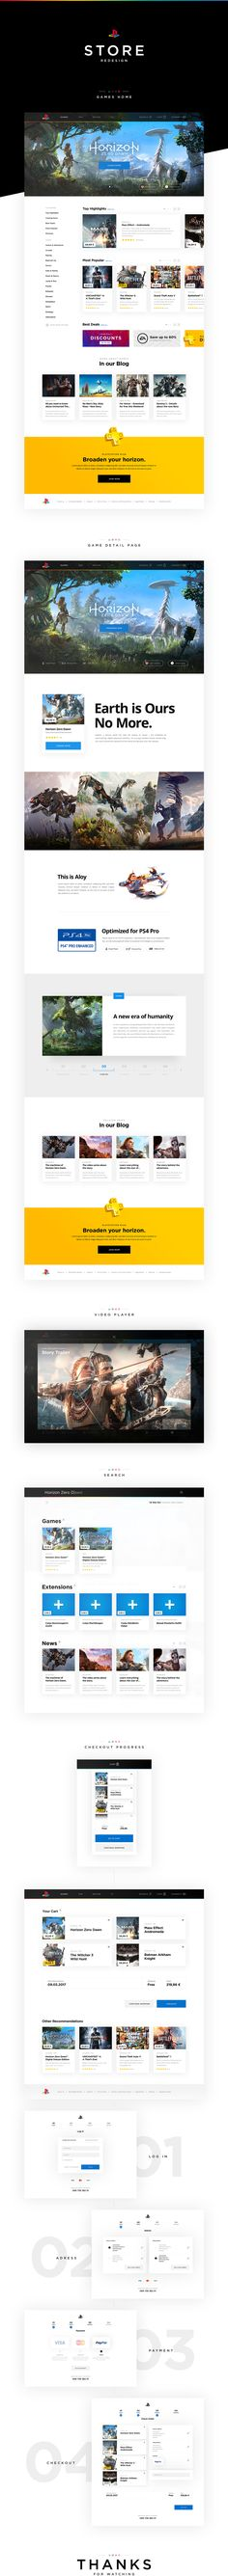 PlayStation Store Redesign